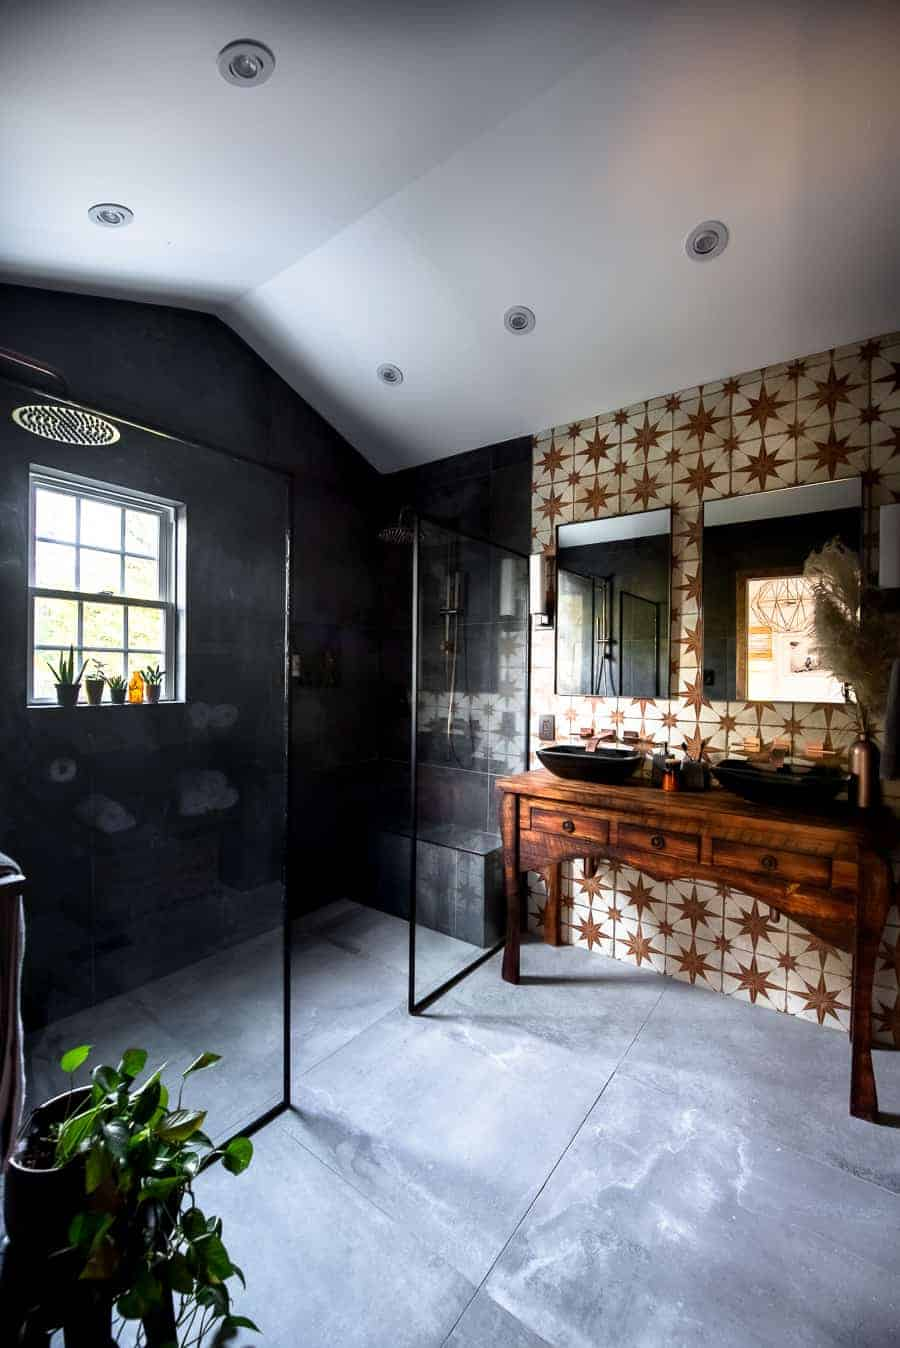 Such a beautiful master bathroom with vintage vanity.